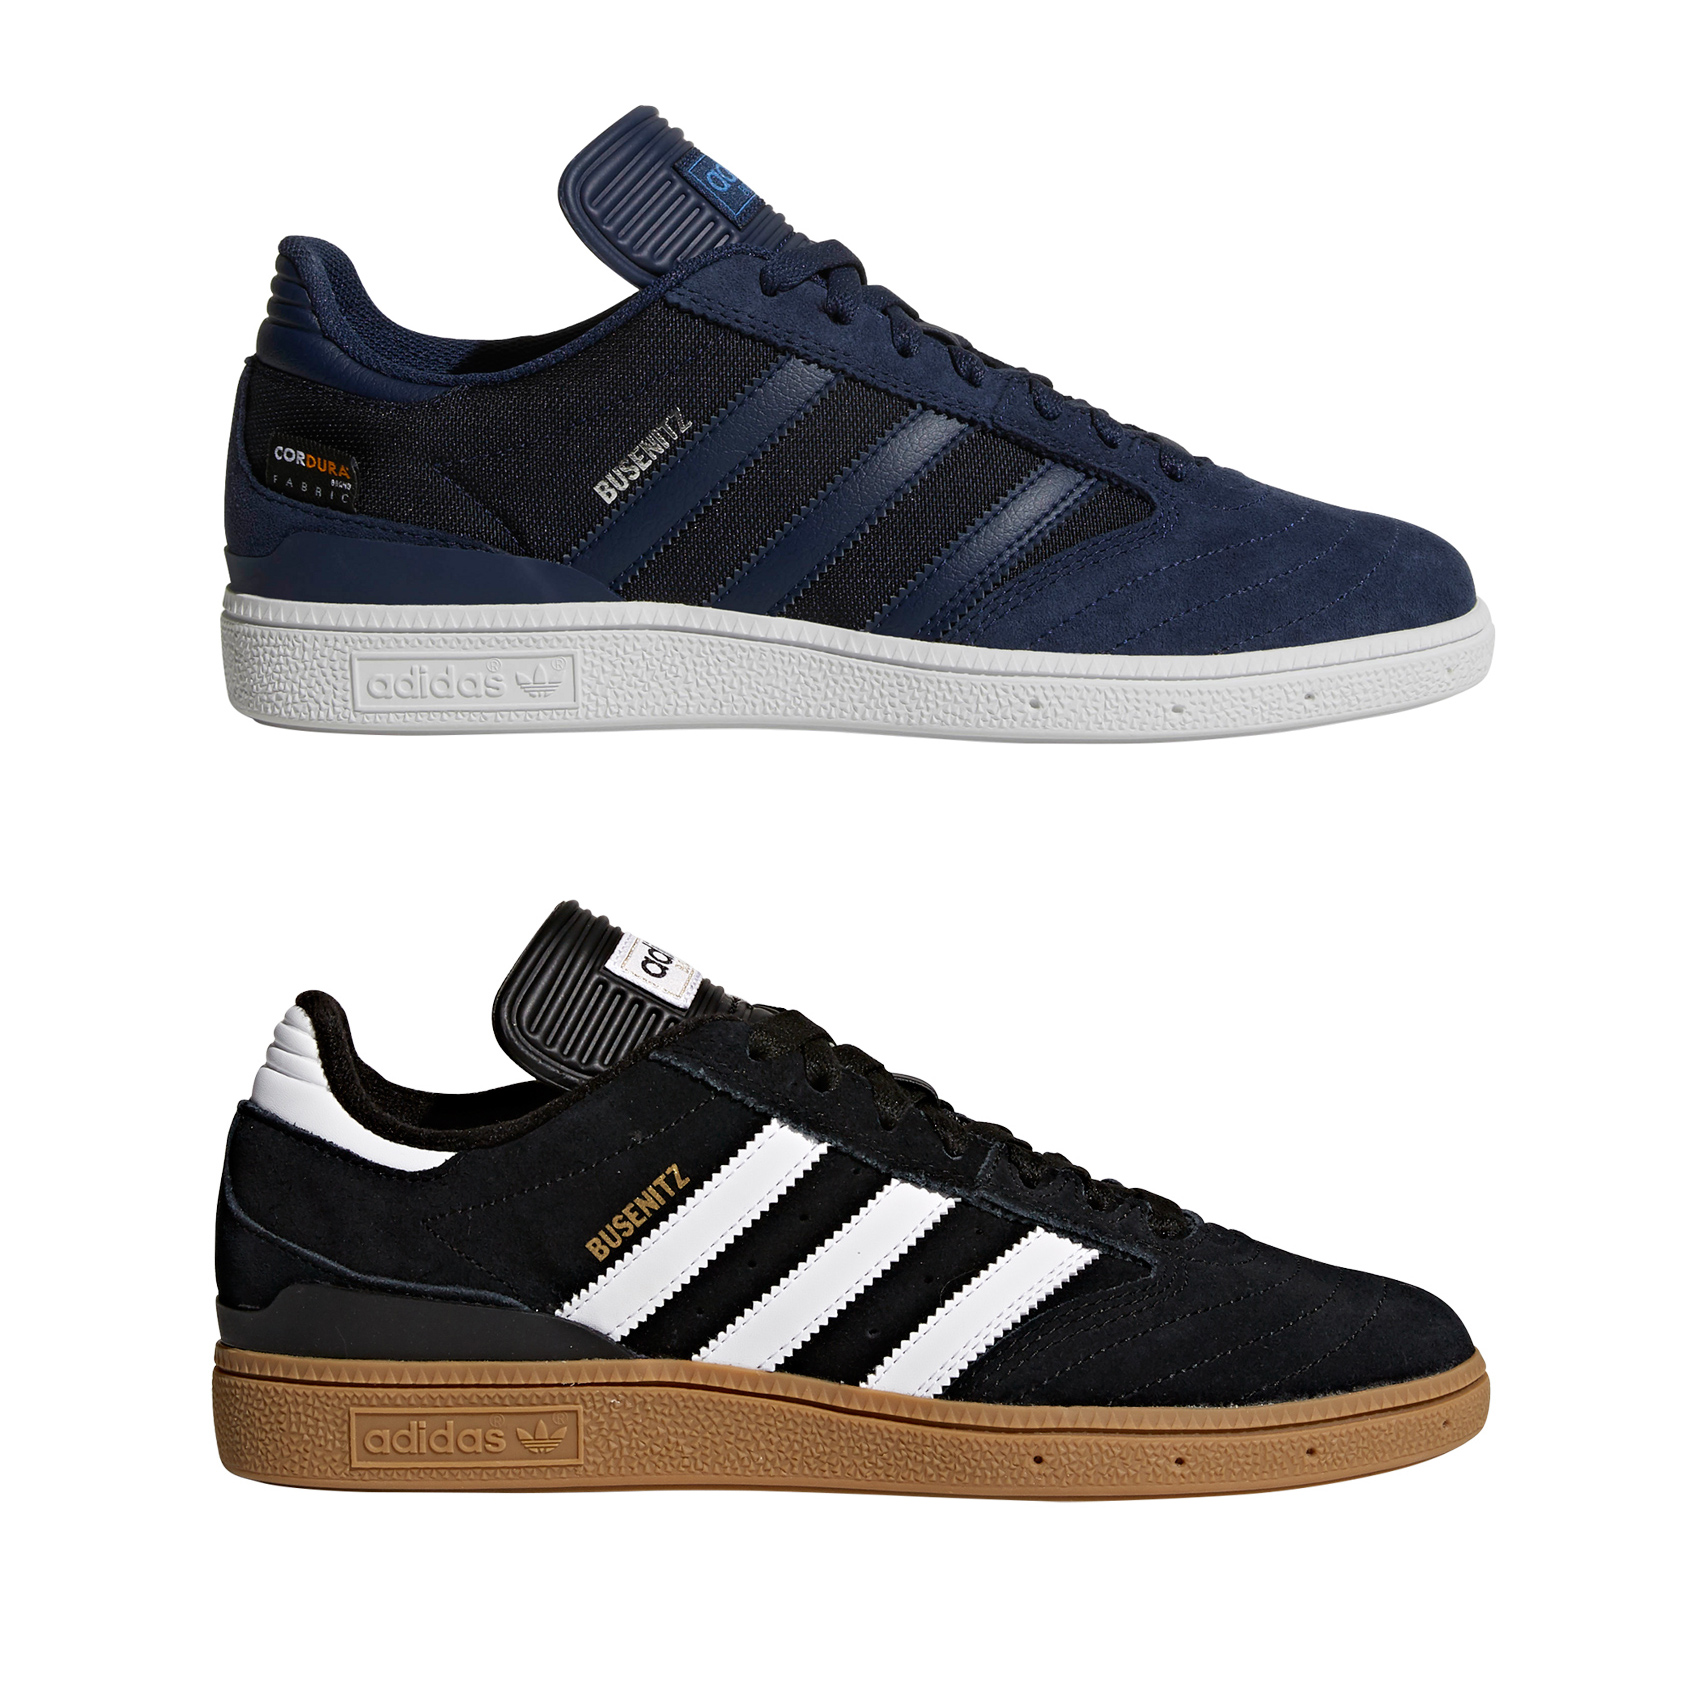 huge discount 51645 94baa Sentinel Adidas Skateboarding - Busenitz - Dennis Busenitz Pro Model, Skate  Shoes, Traine